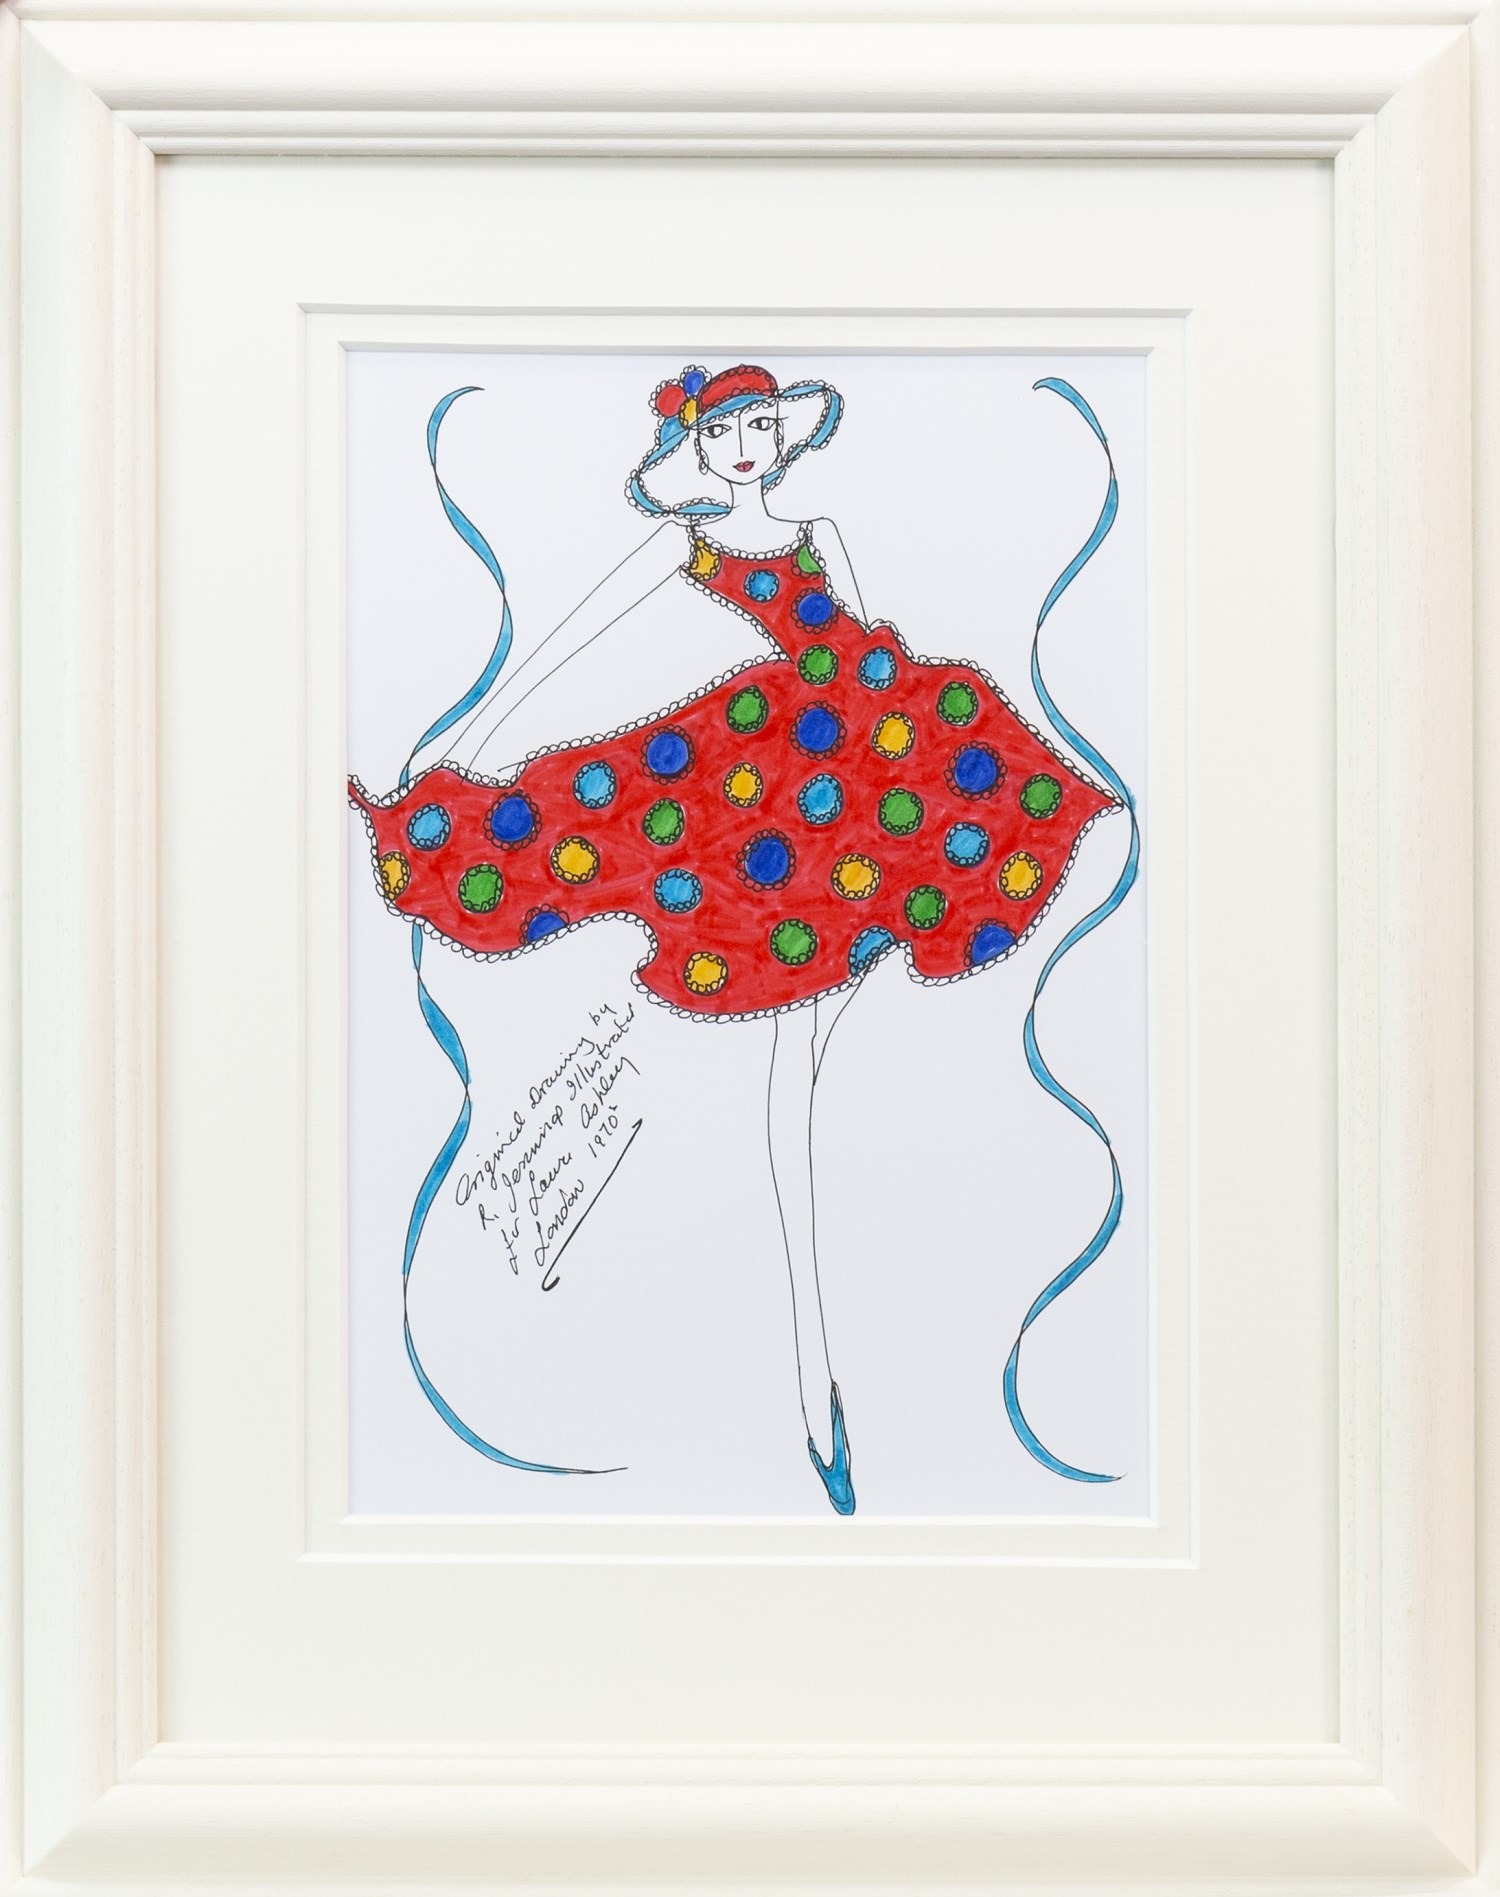 Lot 36 - AN ORIGINAL ILLUSTRATION FOR LAURA ASHLEY, BY ROZ JENNINGS